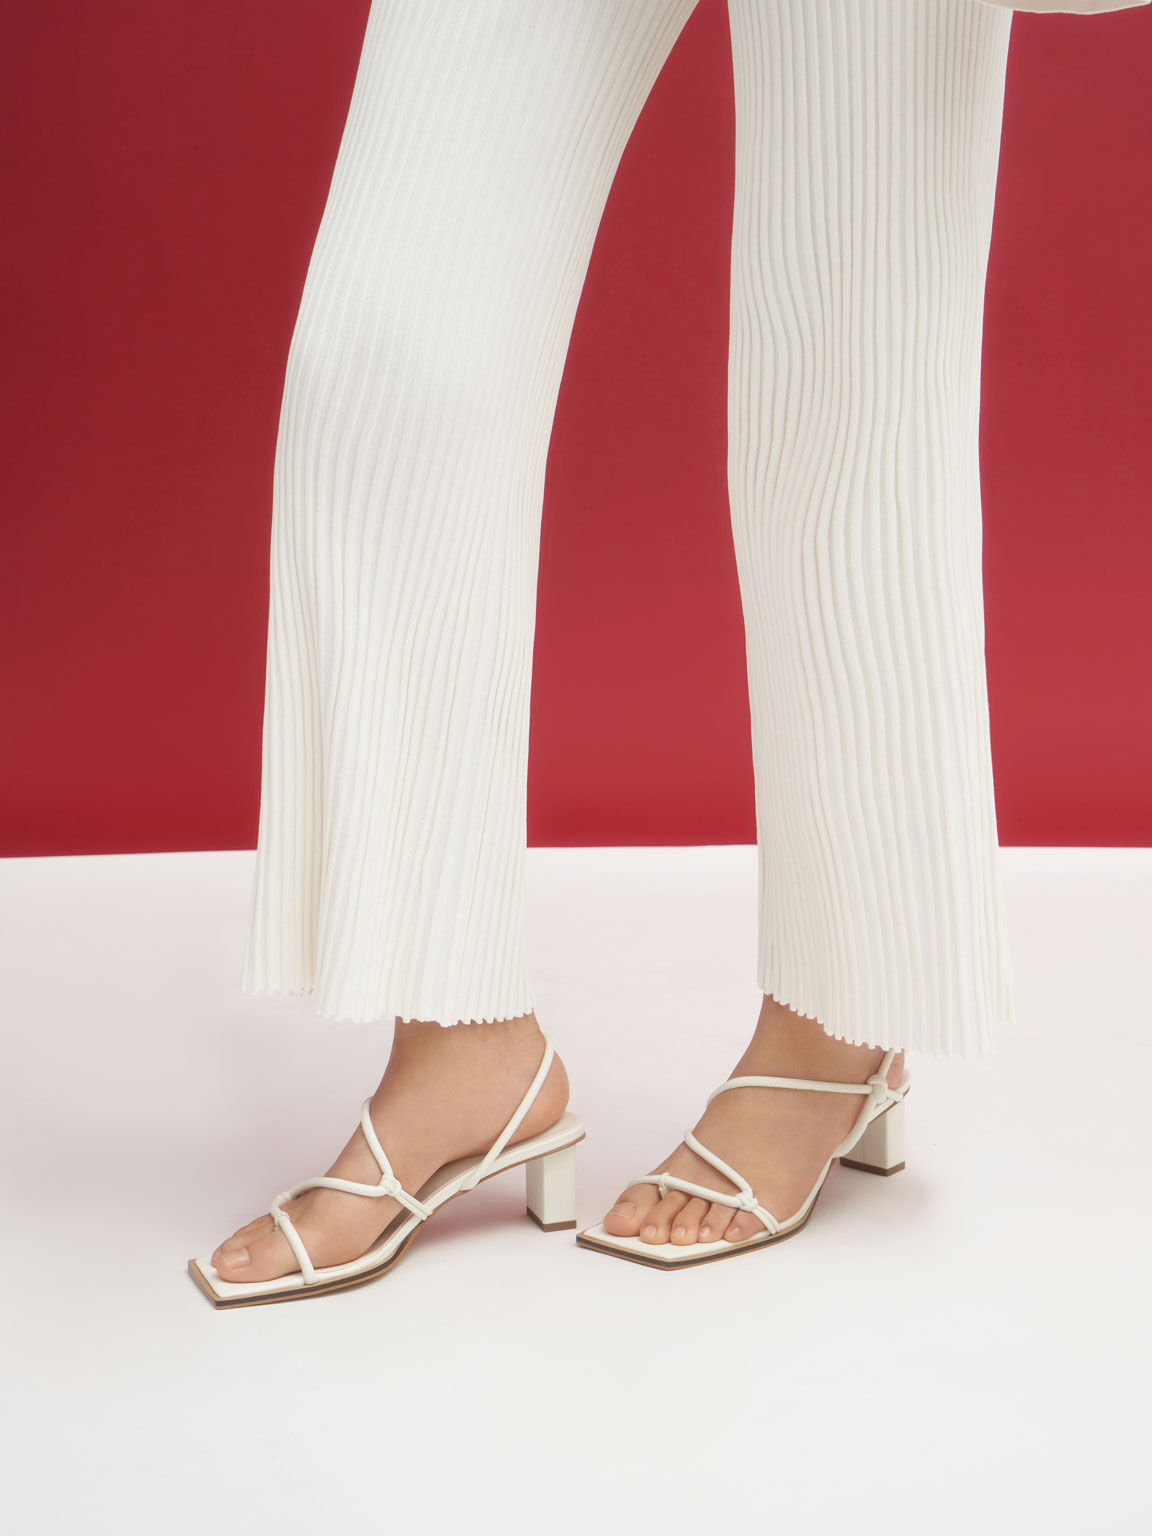 Strappy Toe-Loop Heeled Sandals, White, hi-res